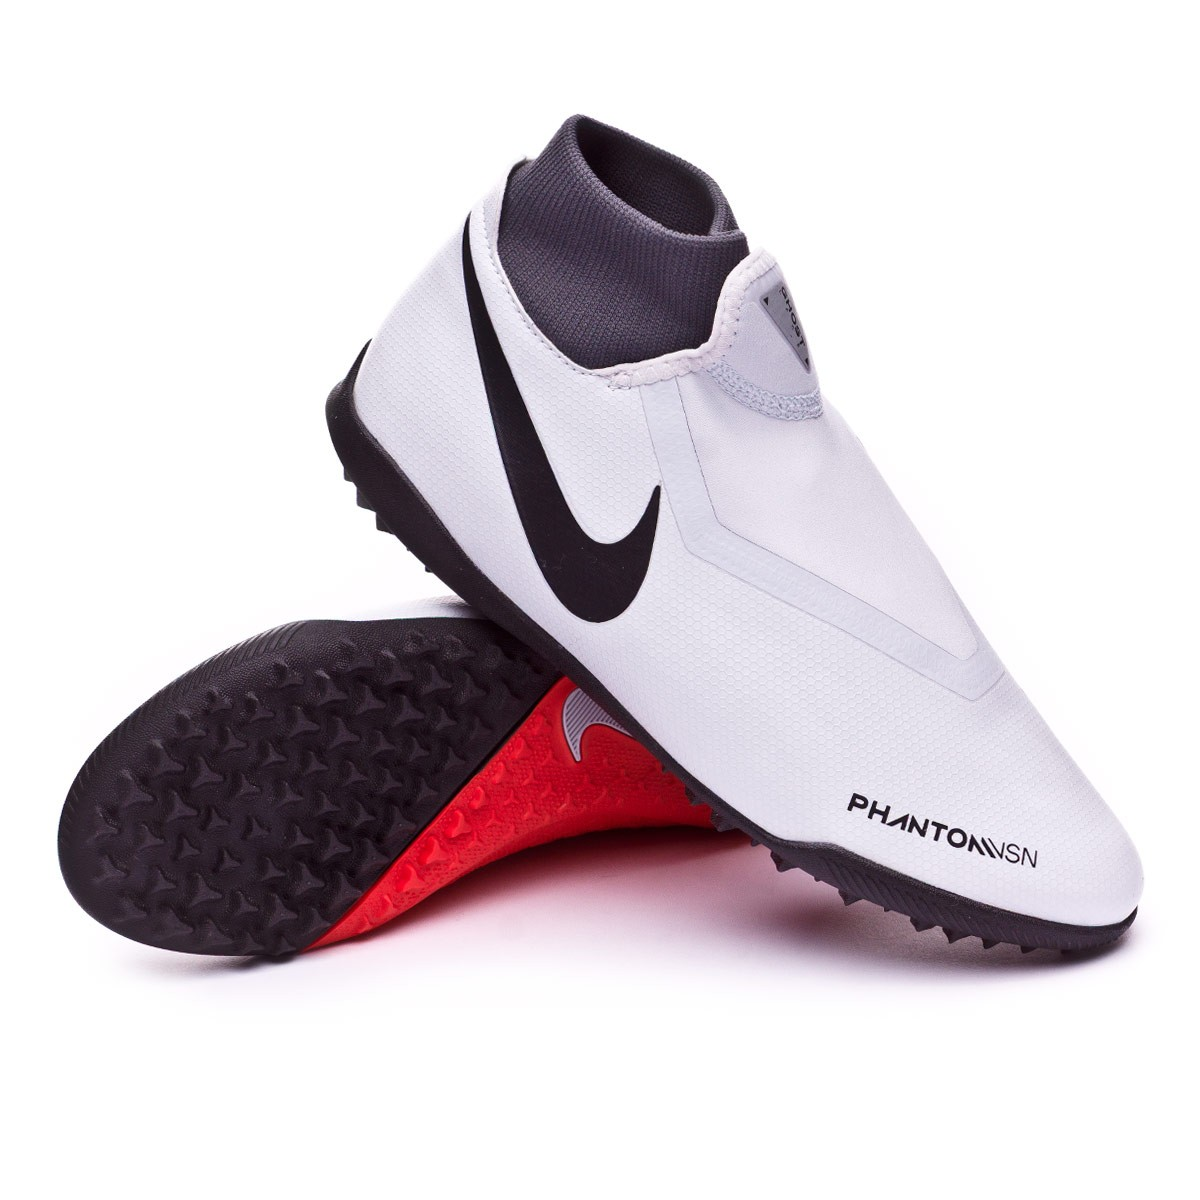 e18030b6d76c4 Football Boot Nike Phantom Vision Academy DF Turf Pure platinum ...